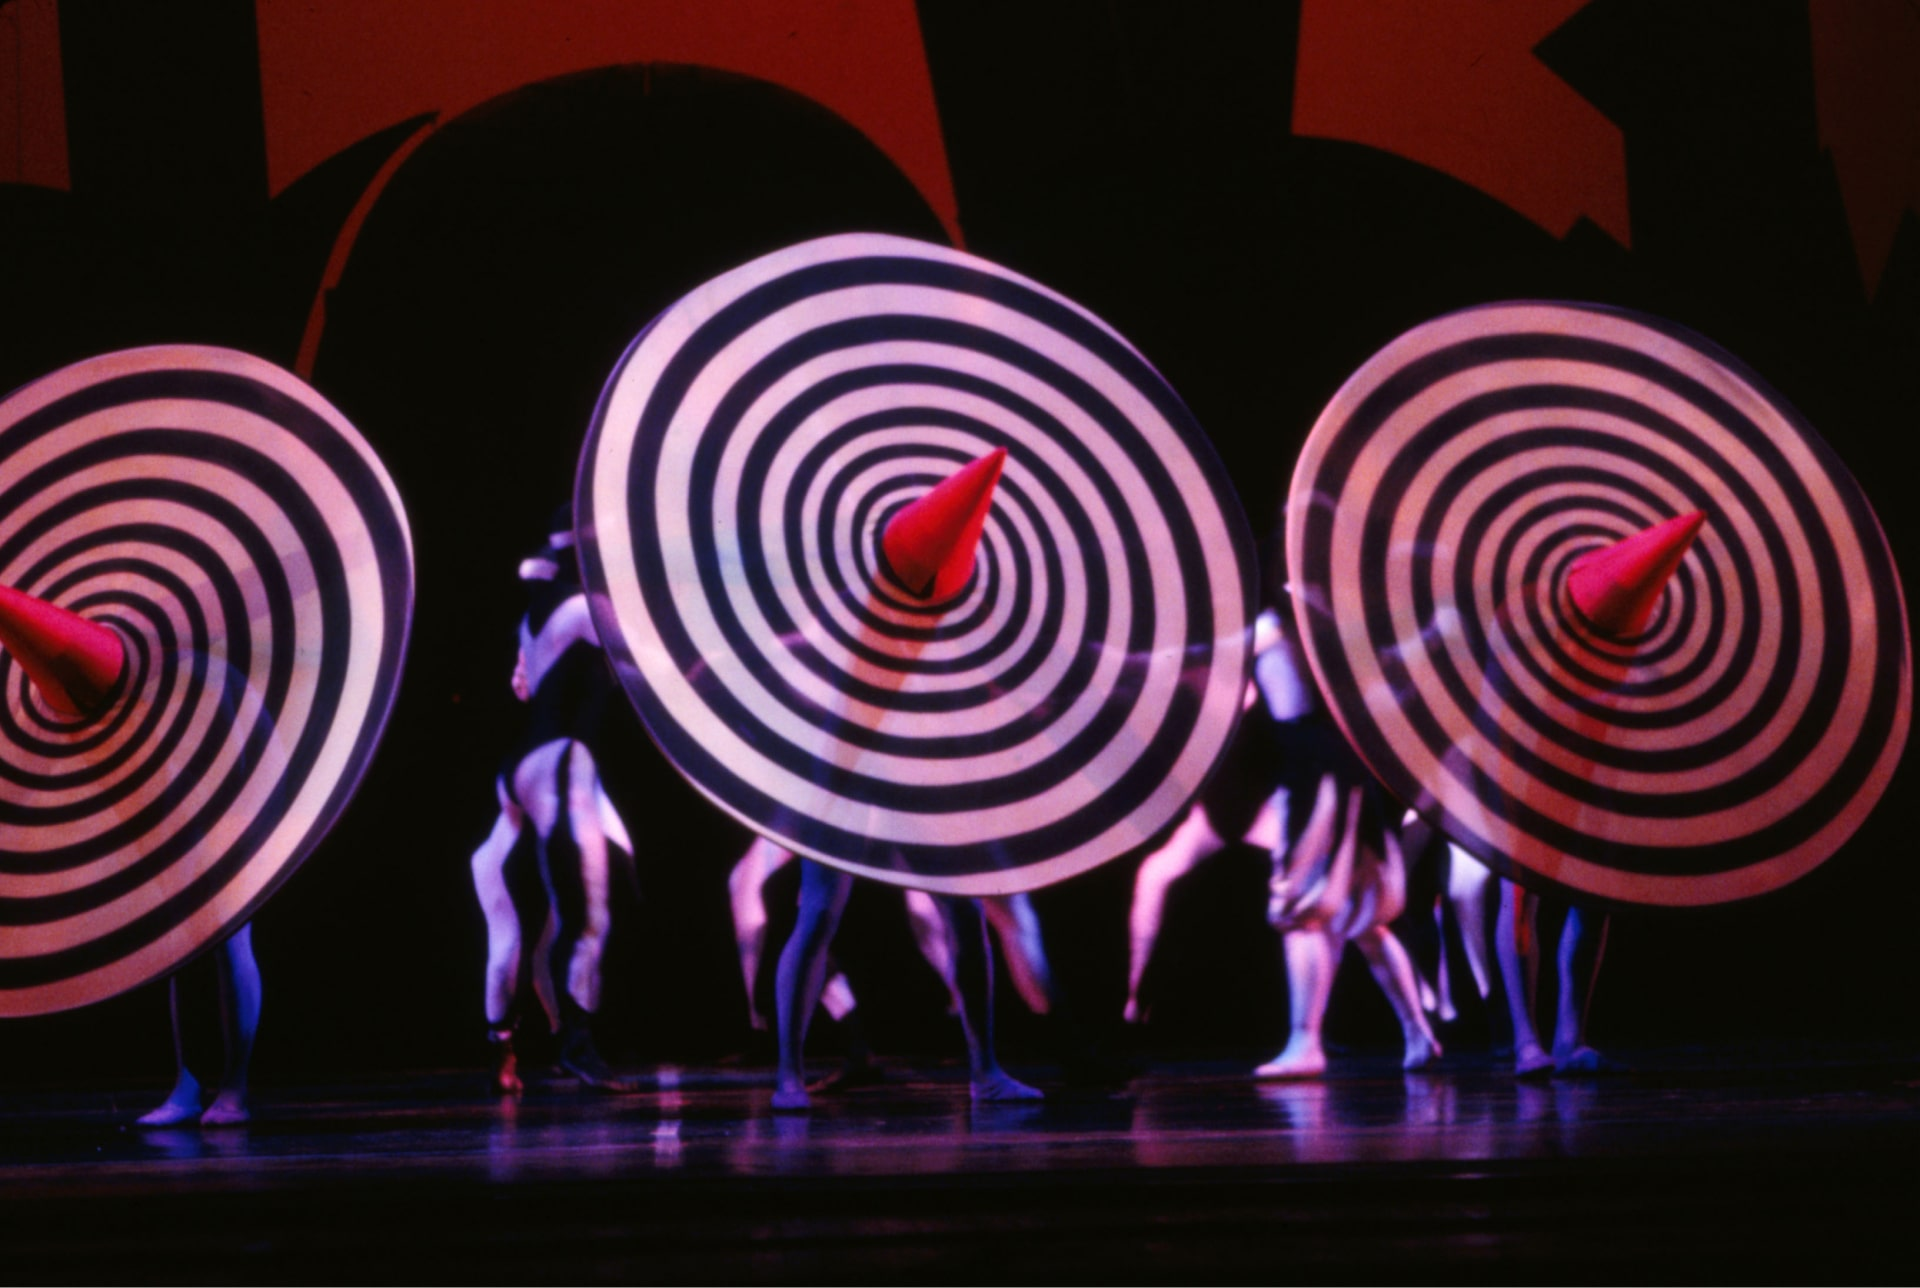 Three dancers hide behind spinning red-topped sombreros in front of blurred figures against red and black background.